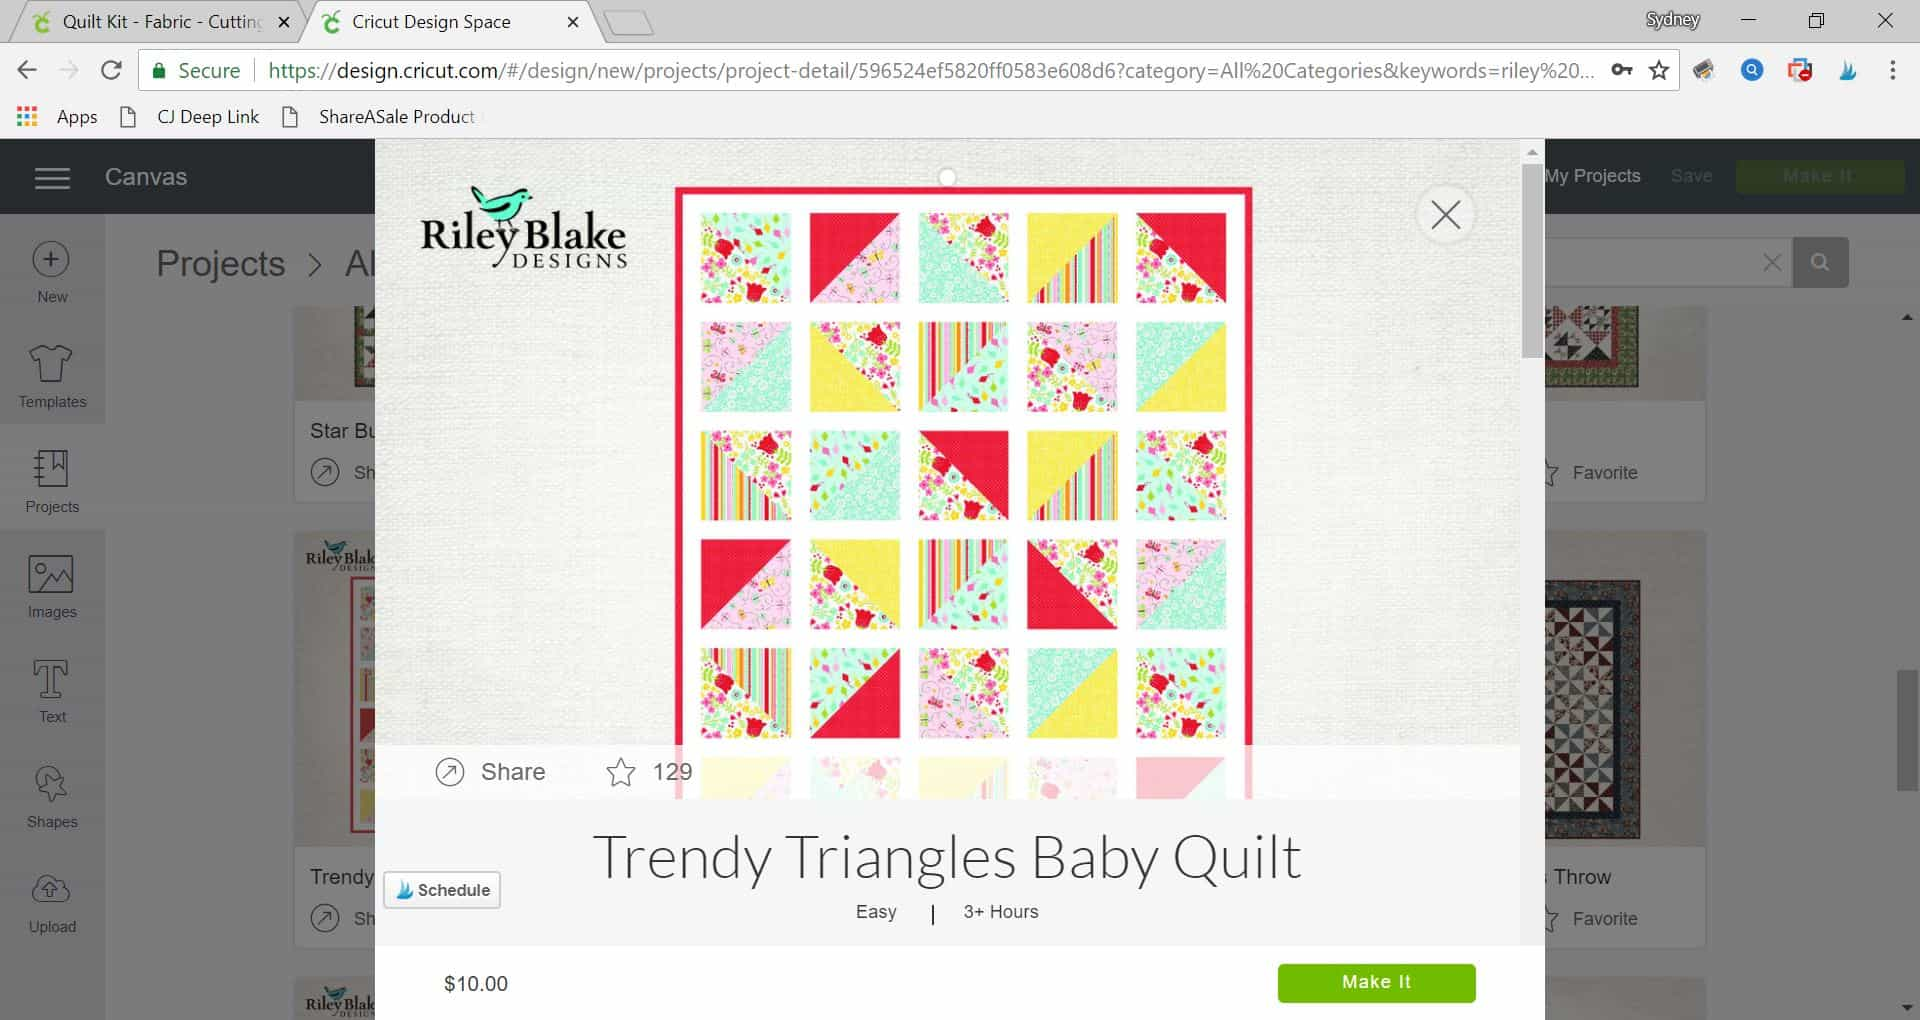 Making quilts is easy with Riley Blake and Cricut! This post goes over all you need to know about picking out your quilt kit, patterns and more! #ad #CricutMade #MyCricutQuilt #RileyBlakeDesigns